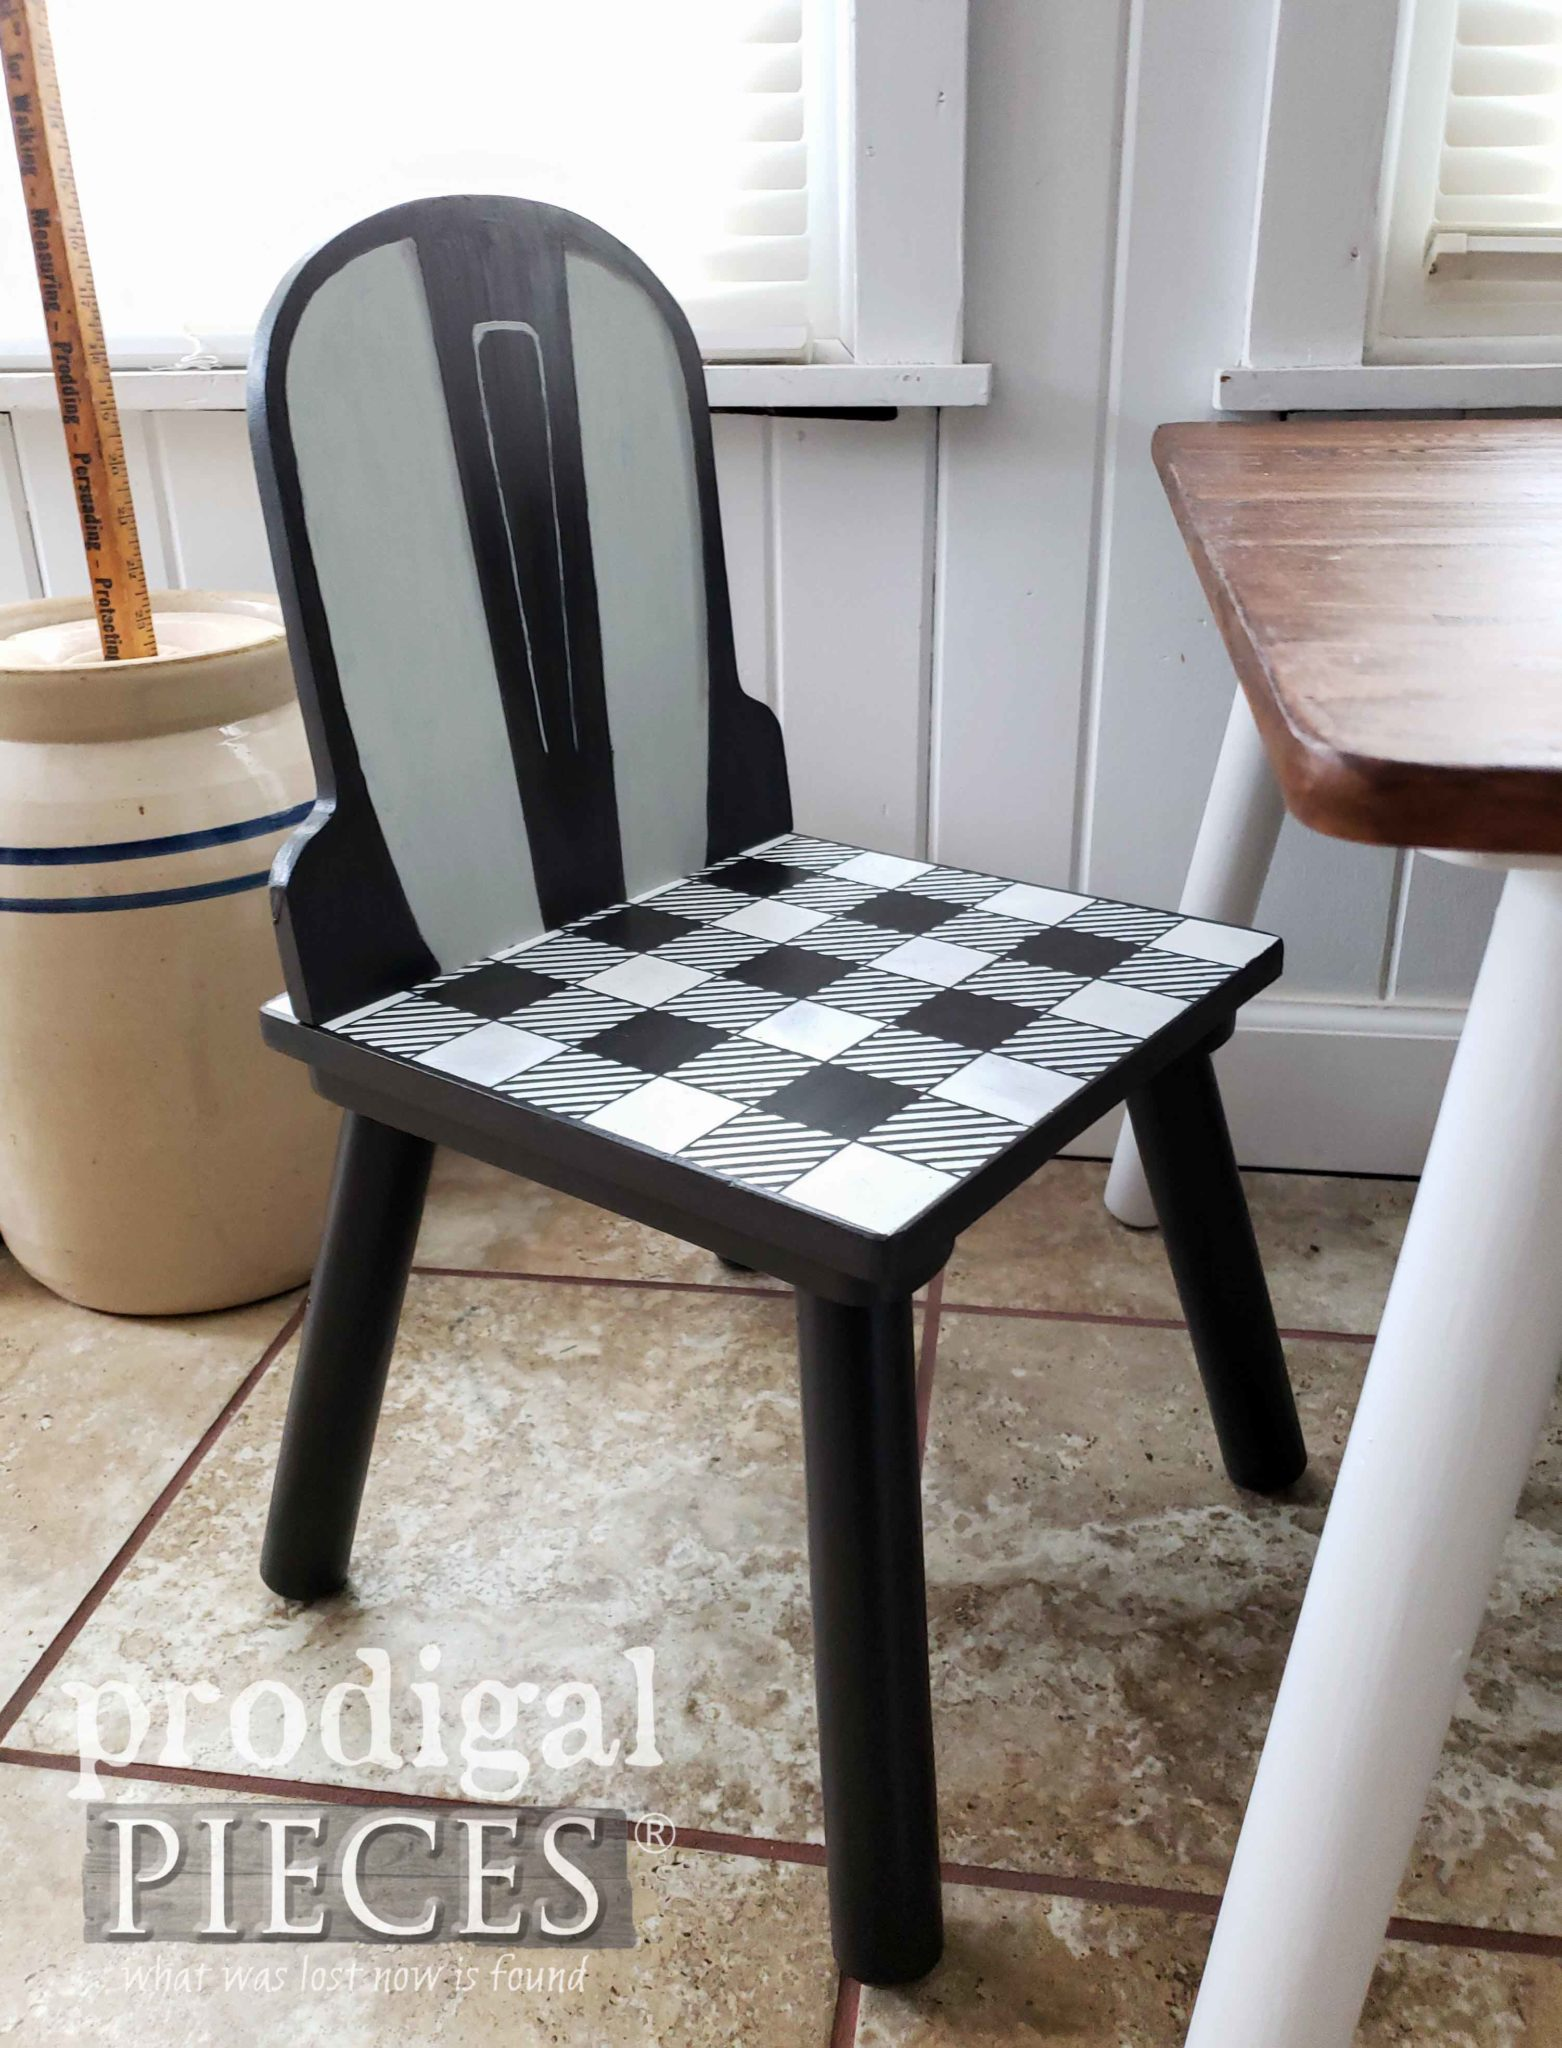 Adorable Buffalo Check Child's Chair for Modern Farmhouse Play Table by Larissa of Prodigal Pieces | prodigalpieces.com